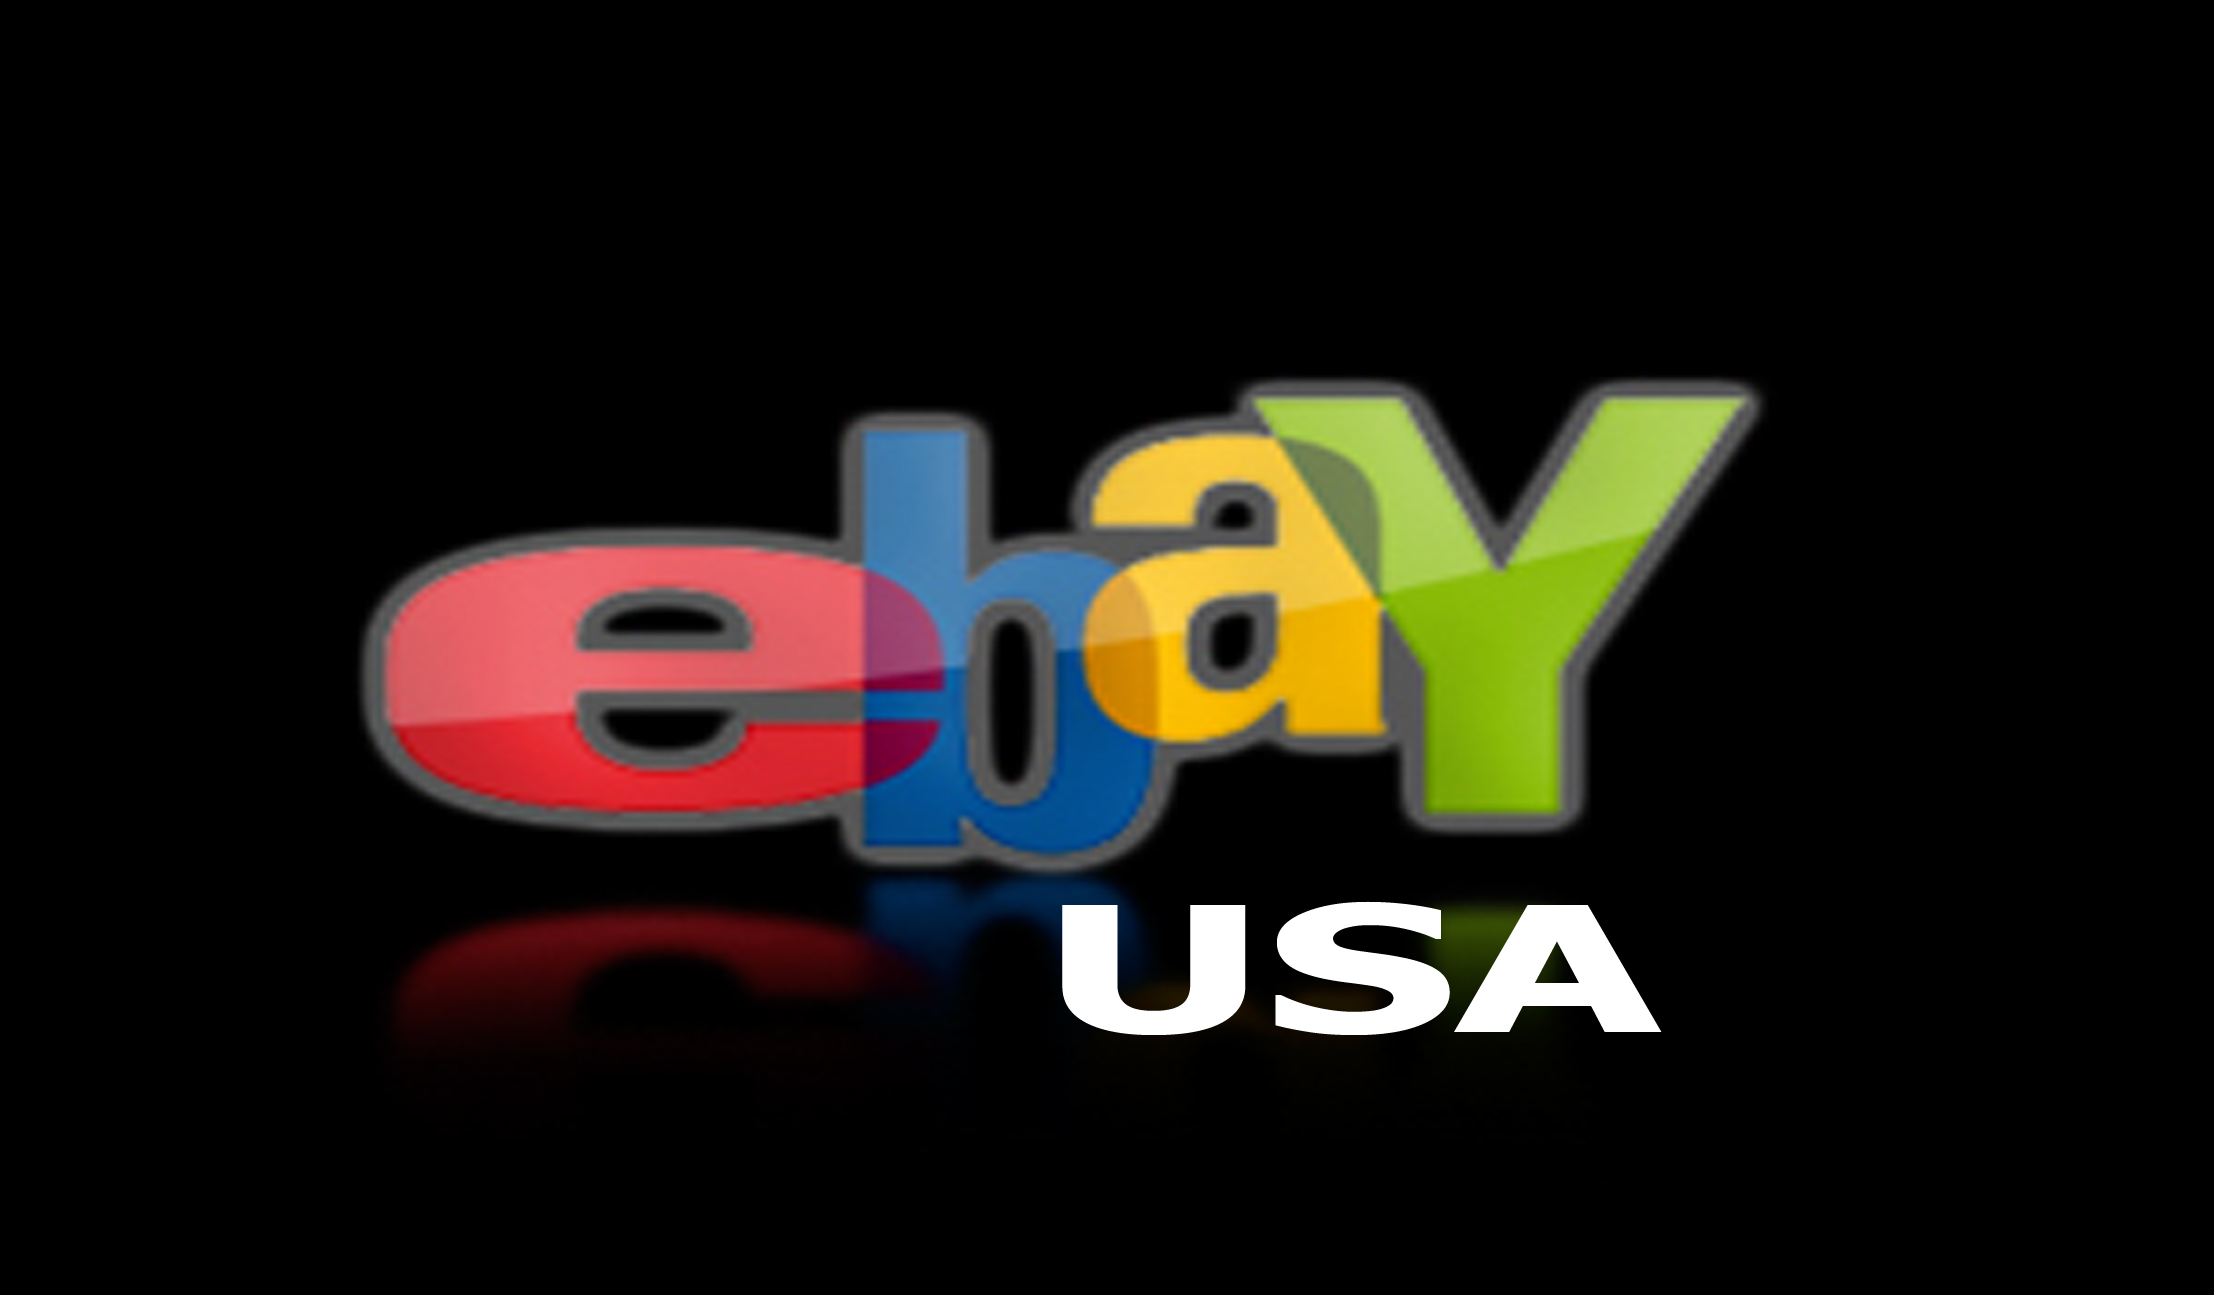 Ebay Estados Unidos Espanol September 2020